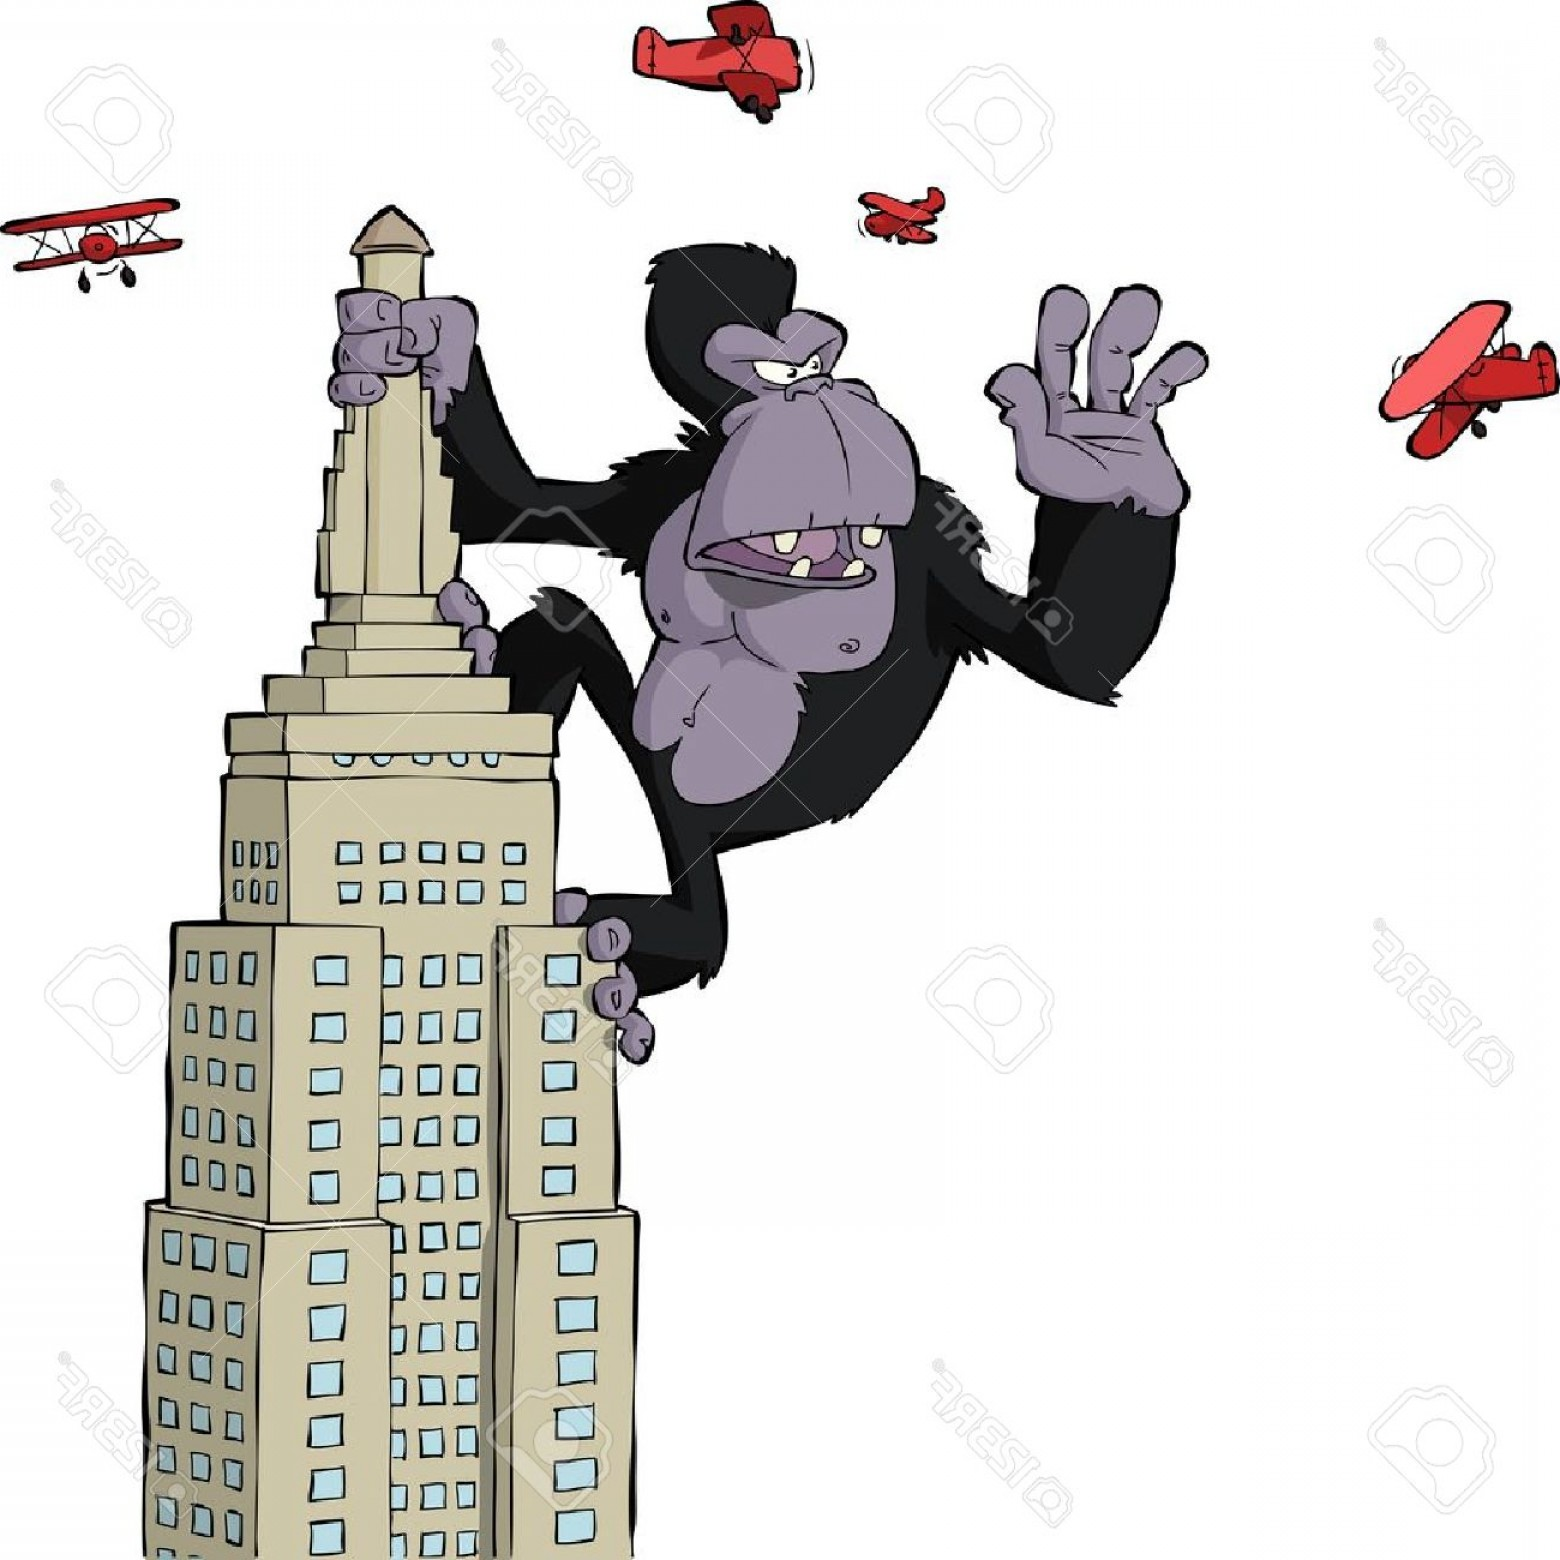 Drawings Of King Kong Vector: Photoking Kong On A Skyscraper Vector Illustration